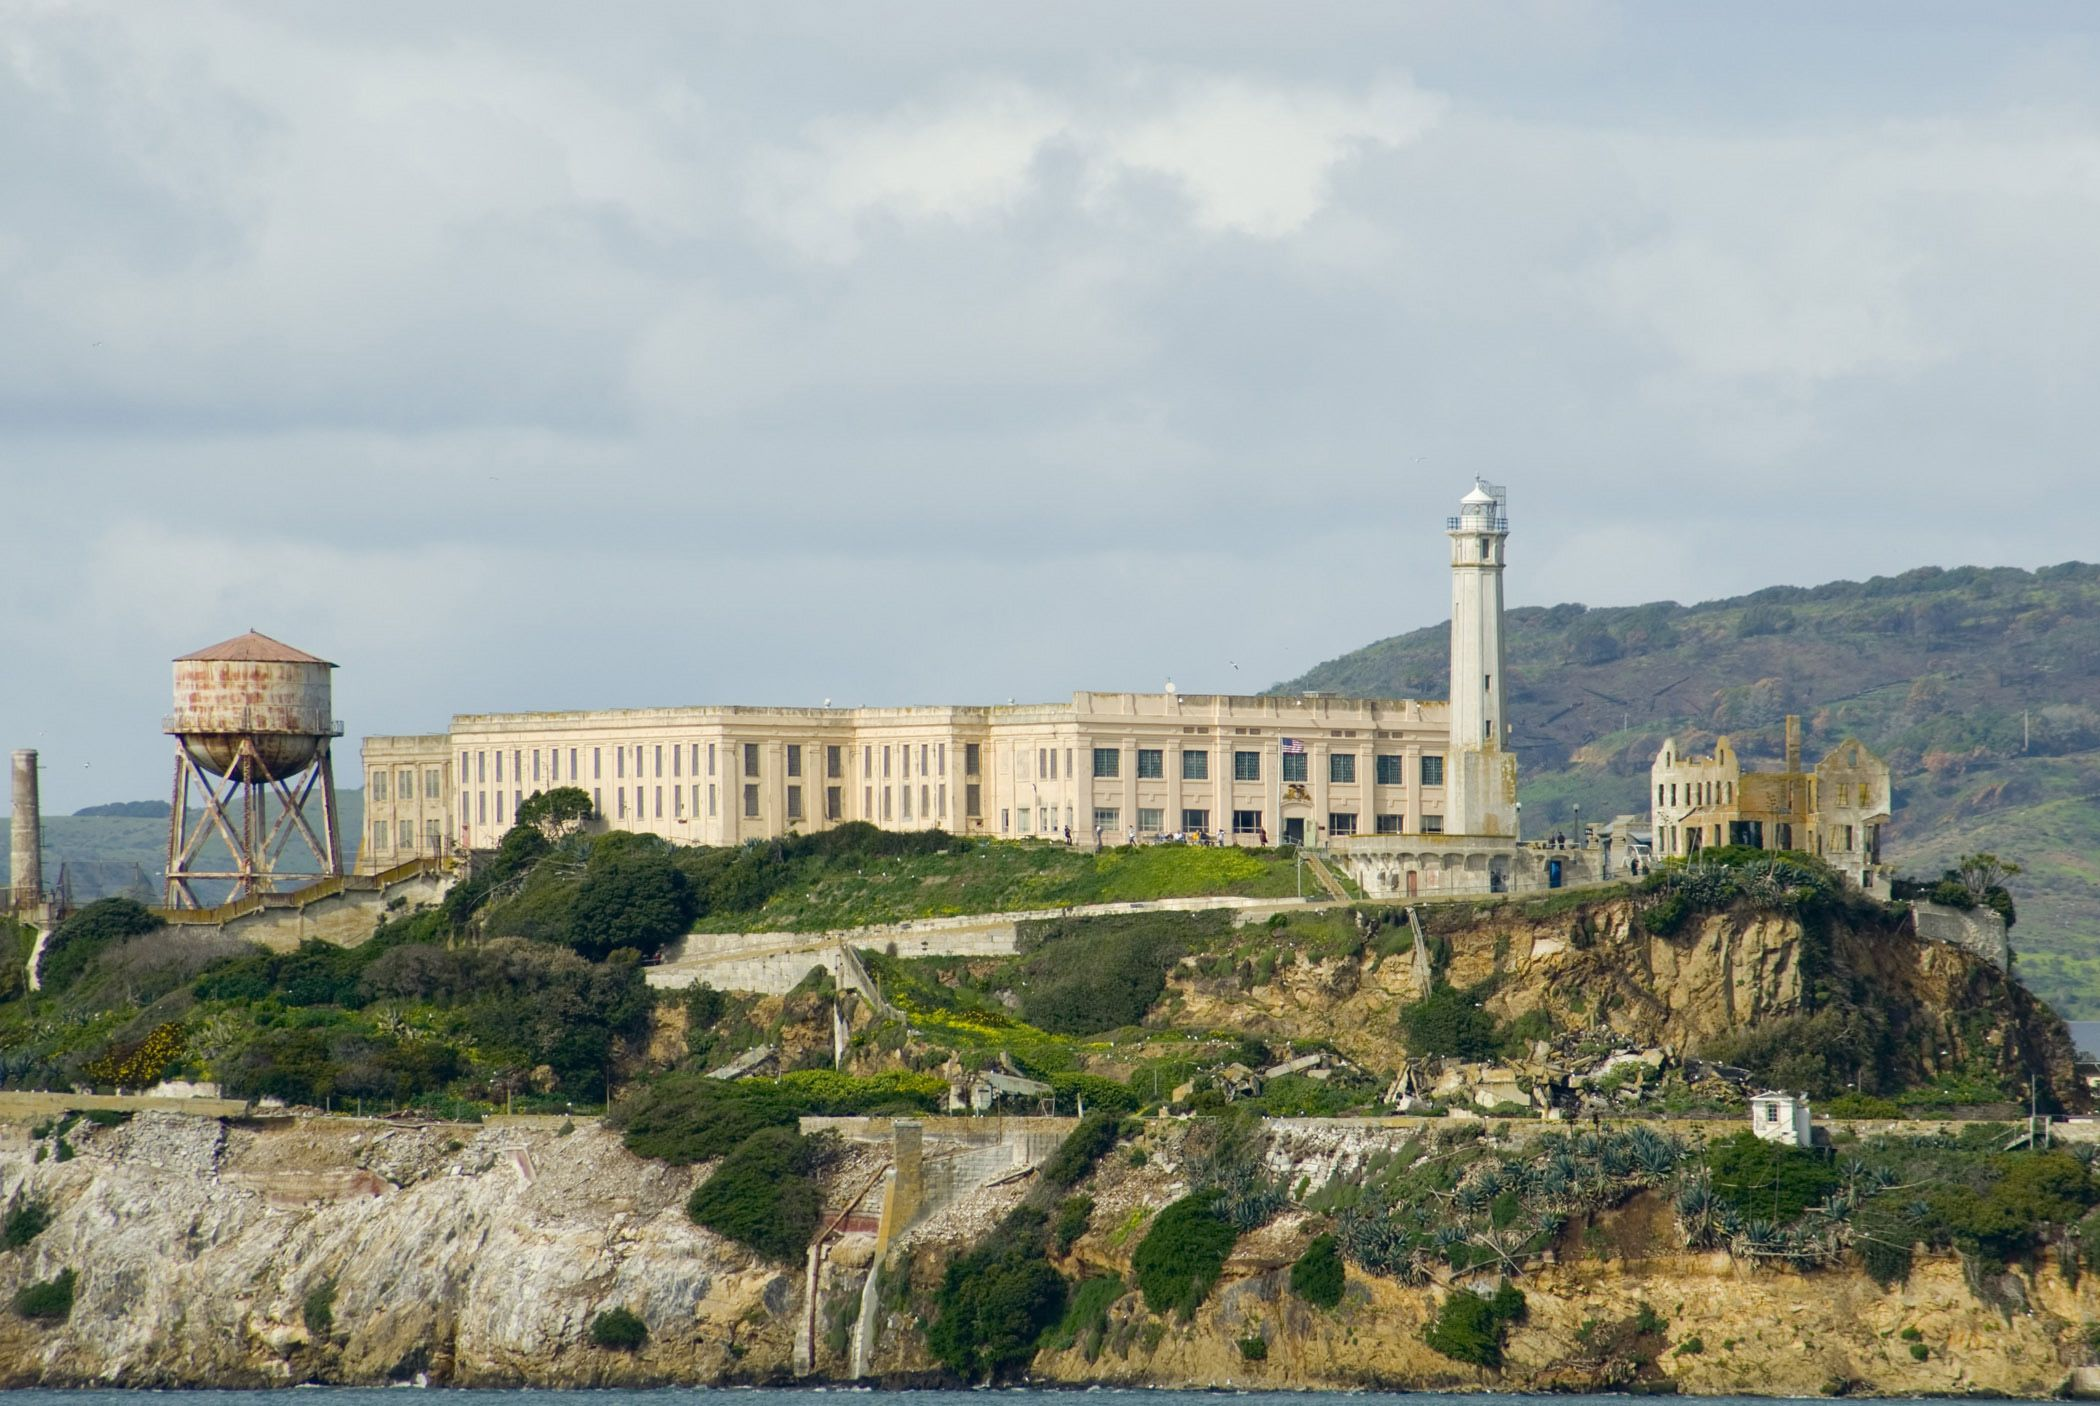 Free Stock photo of Fortified prison on Alcatraz Island ...